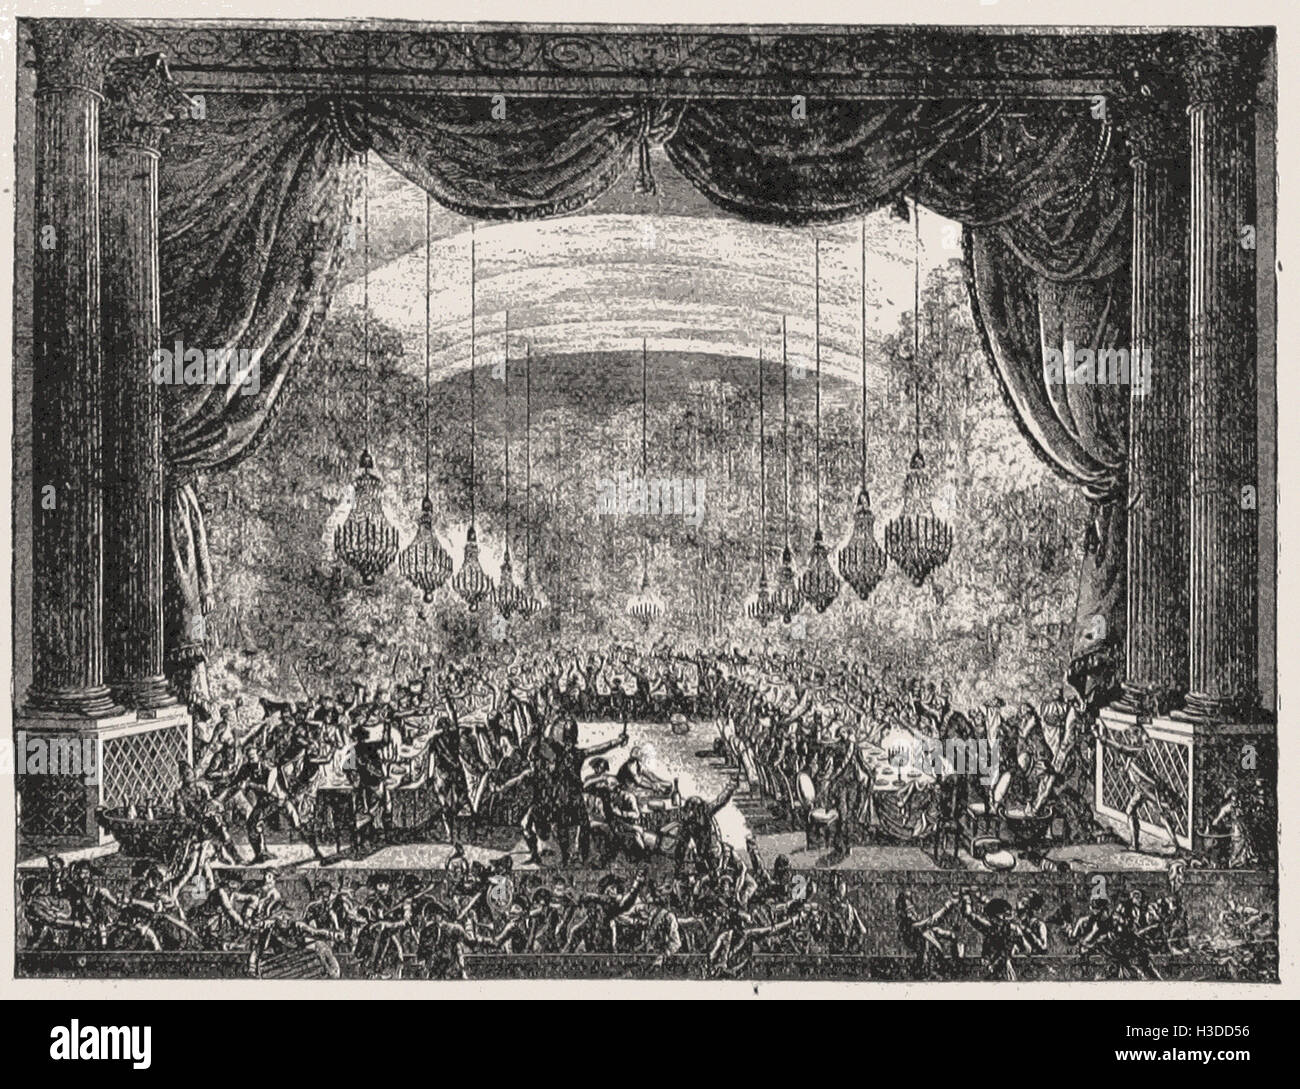 THE GARDE DU CORPS ENTERTAINING THE REGIMENT OF FLANDERS IN THE ORANGERY AT  VERSAILLES, OCTOBER 3, 1789 - Stock Image